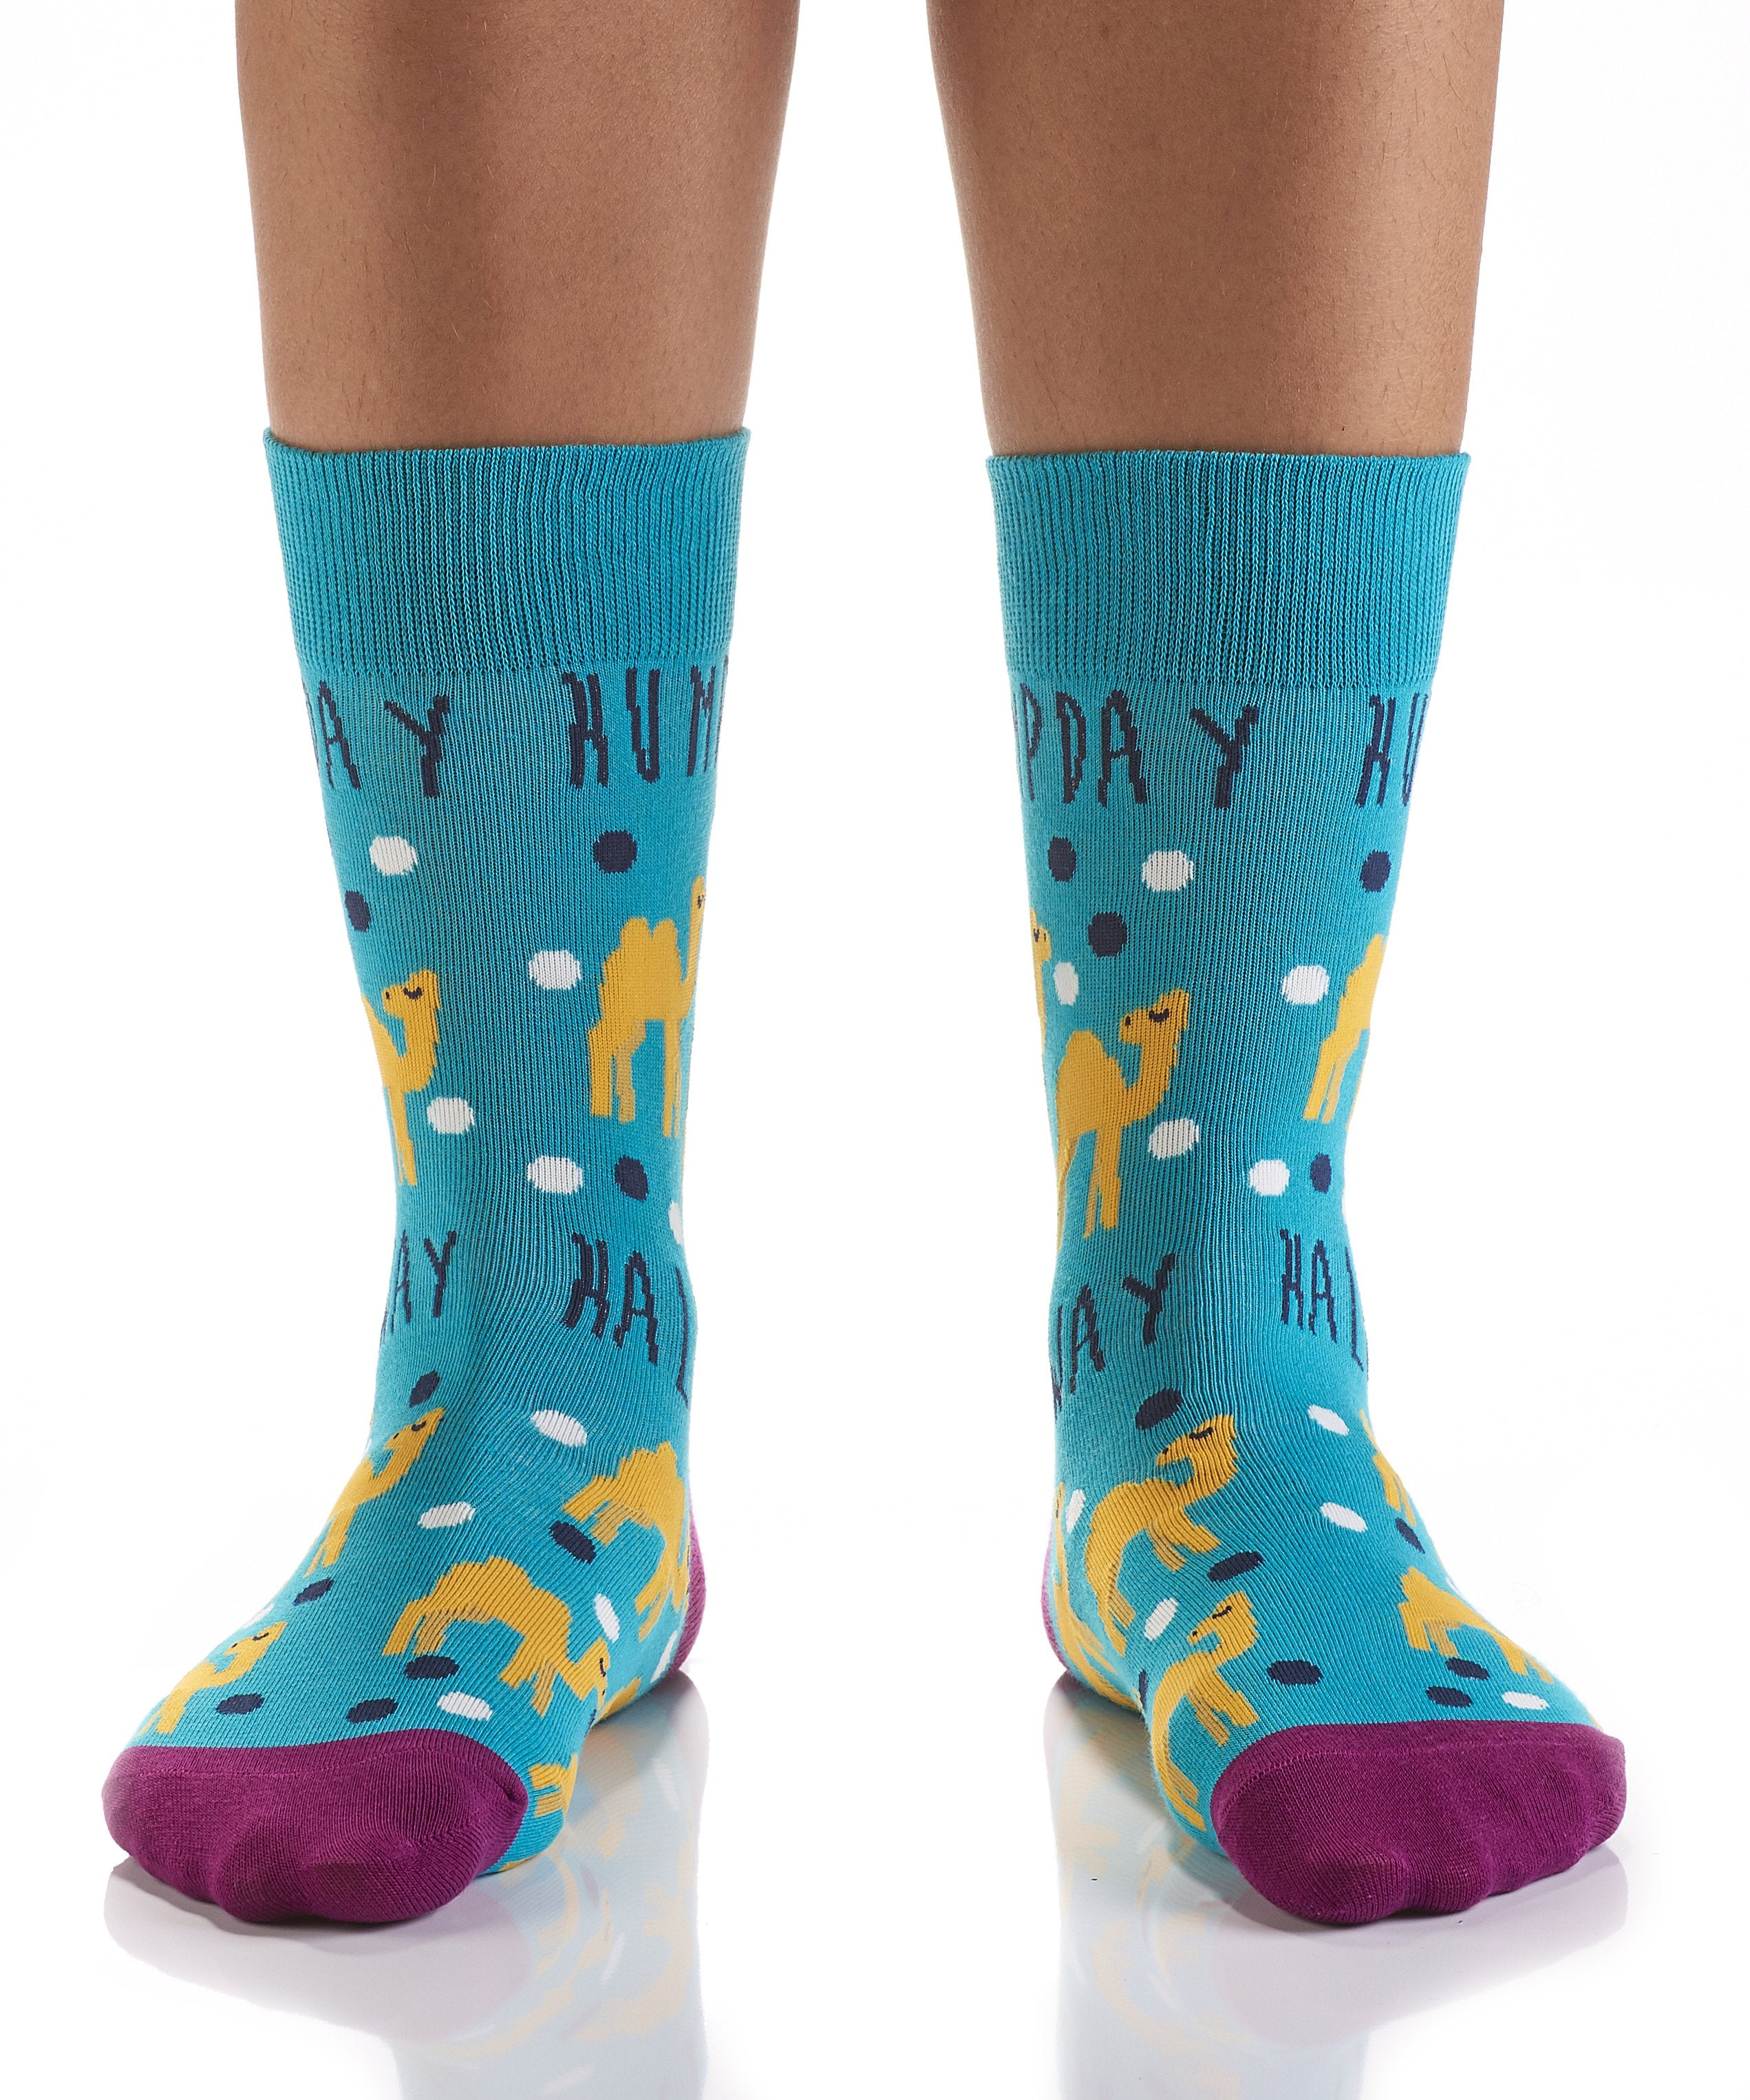 Hump Day: Women's Crew Socks